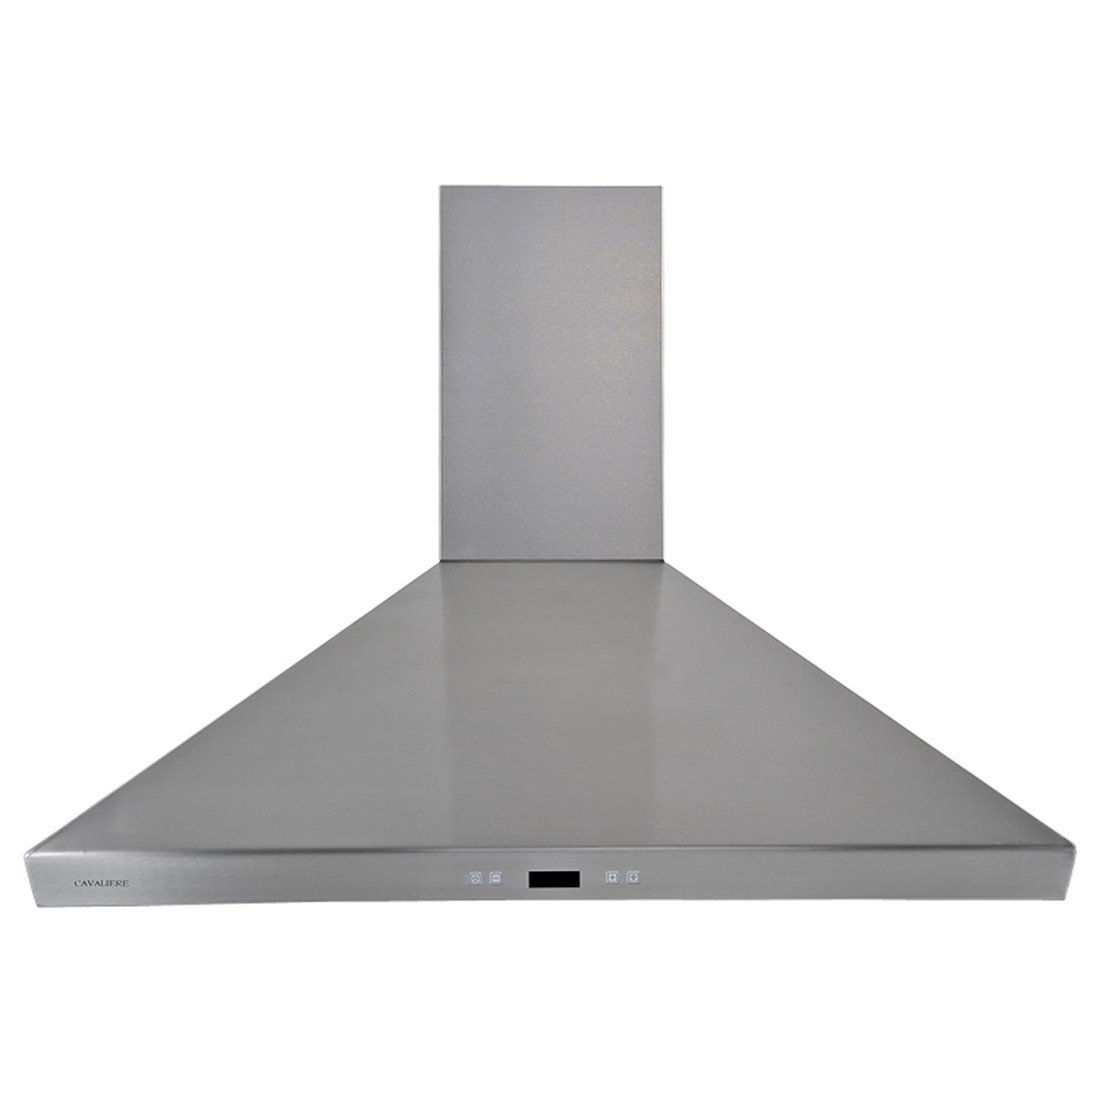 CAVALIERE SV218F-36 Wall Mounted Stainless Steel Kitchen Range Hood 900 CFM